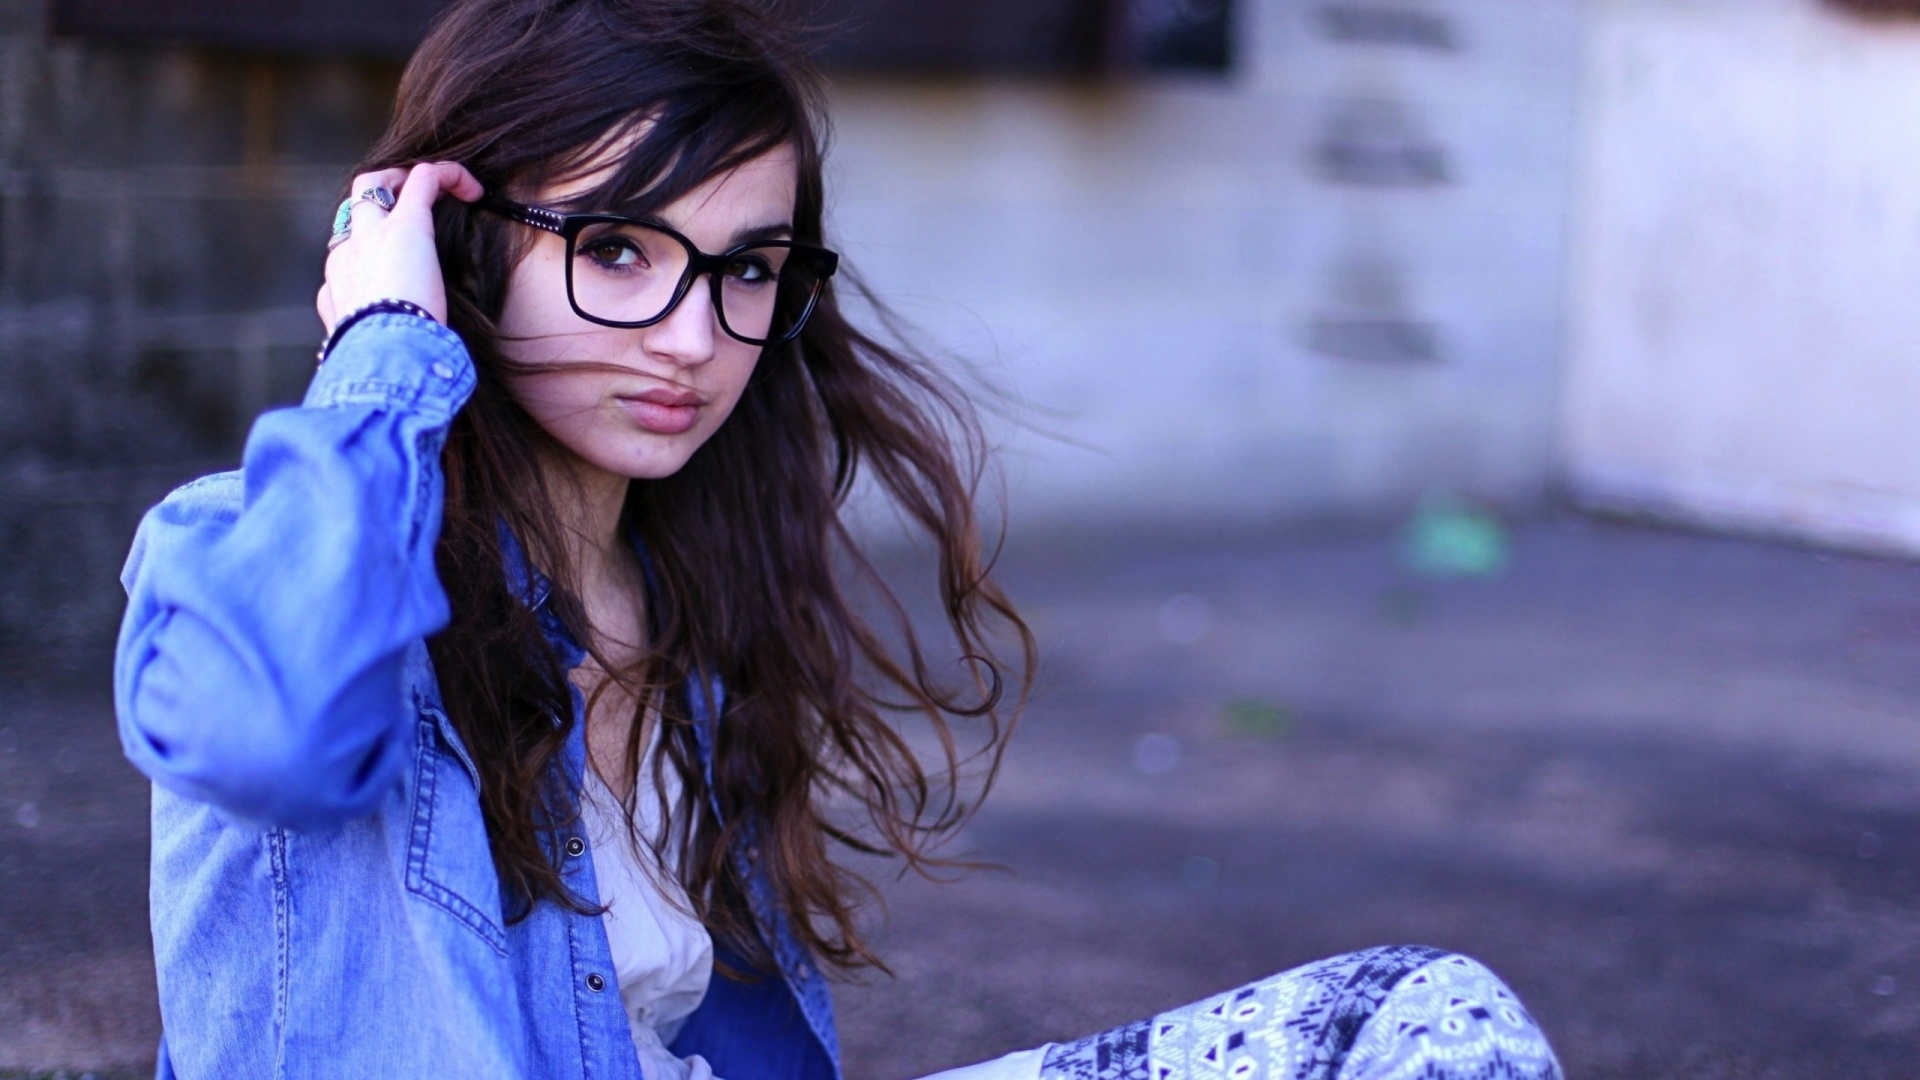 1000 images about Glasses 1920x1080